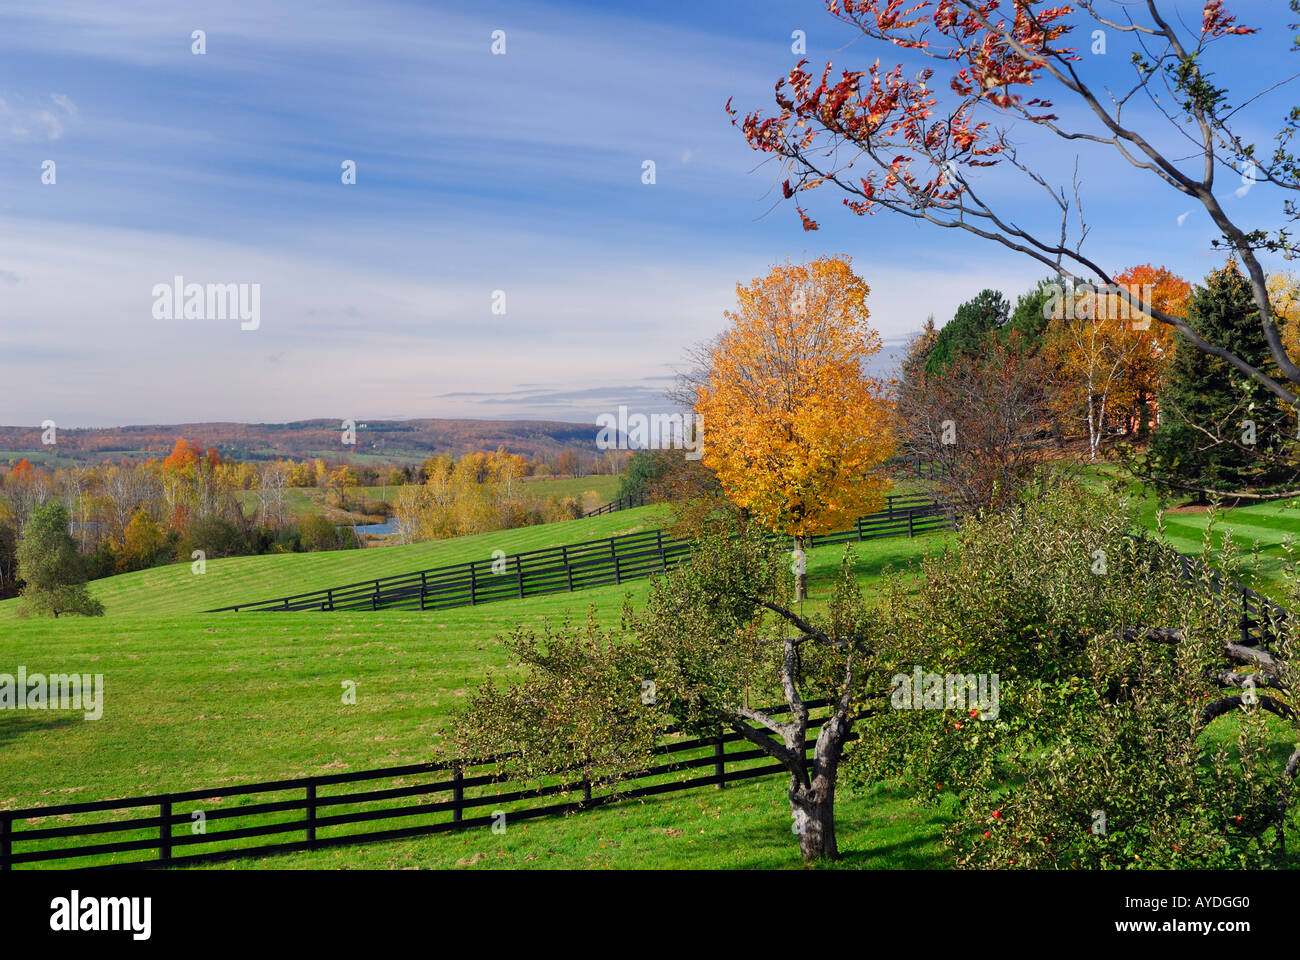 Grassy horse farm pasture land in Oak Ridges Morrain estate in Ontario - Stock Image